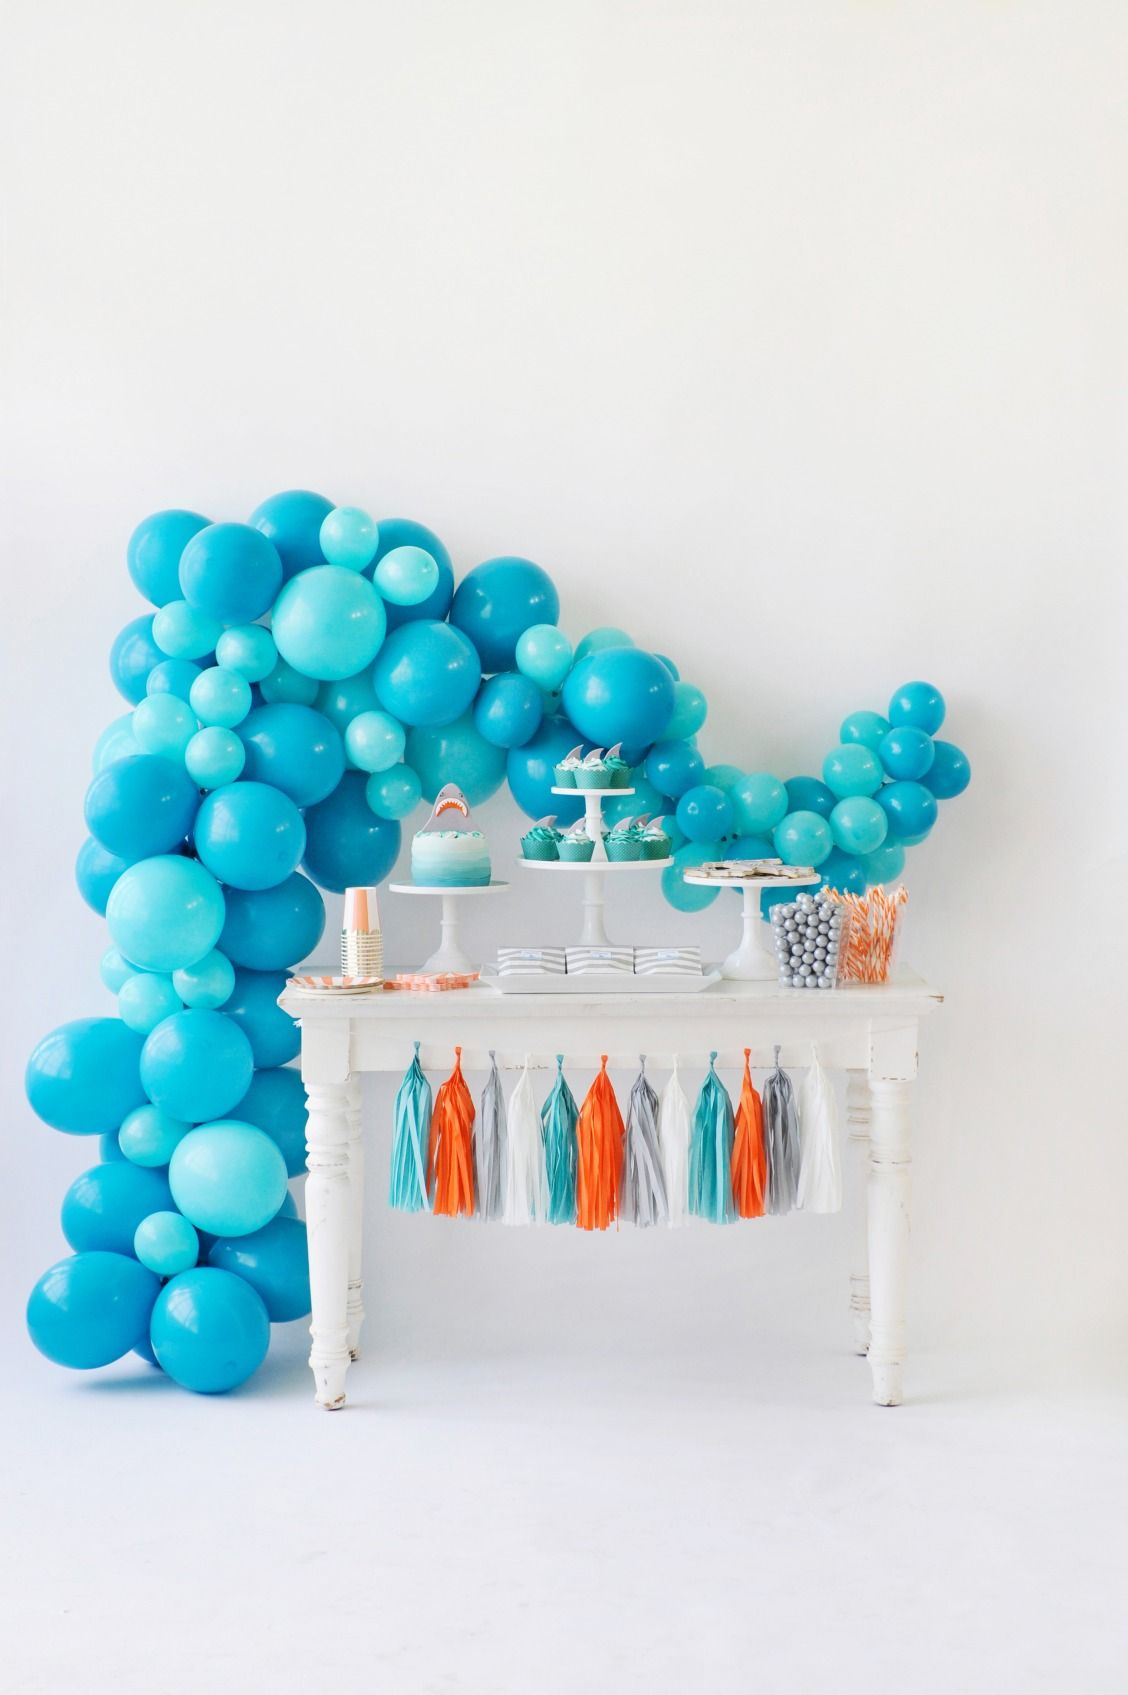 Blue White Orange And Gray Themed Birthday Party Dessert Table